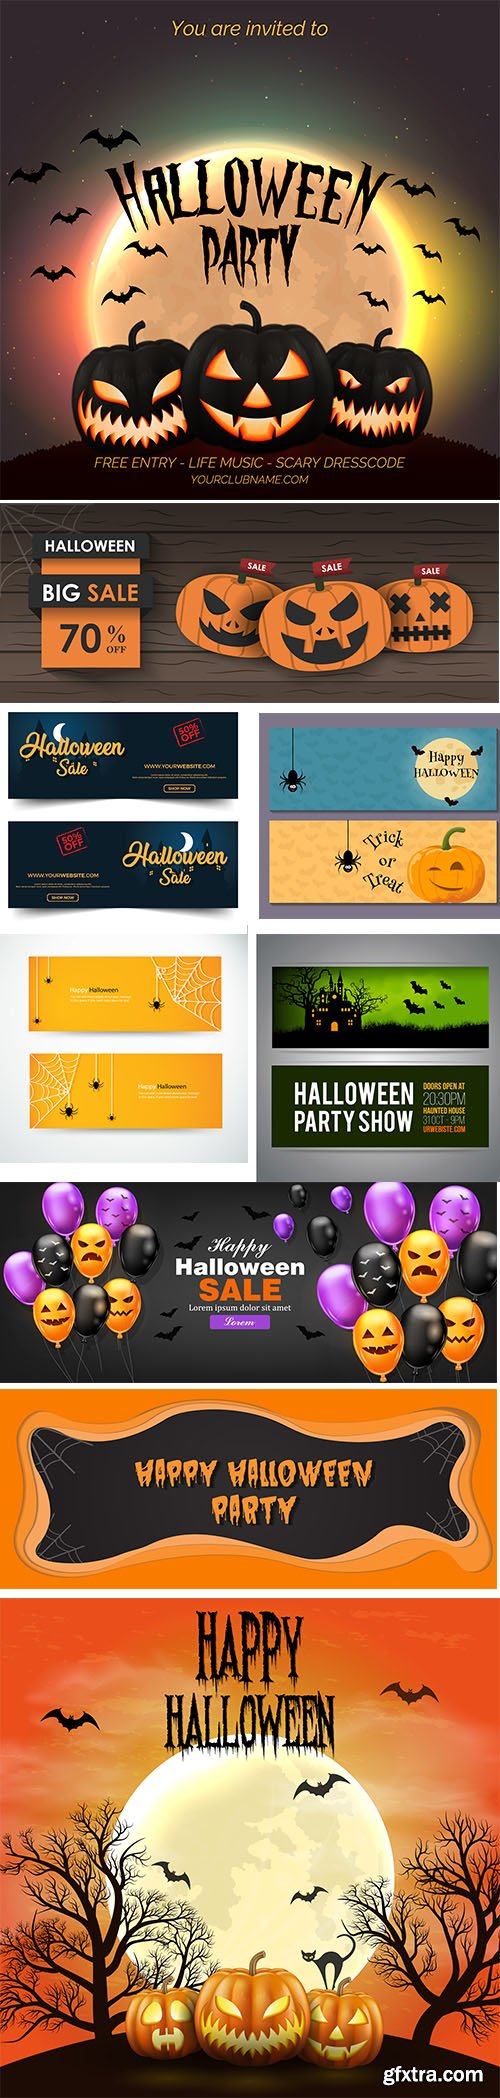 Halloween Poster and Background Banner Vector Illustrations